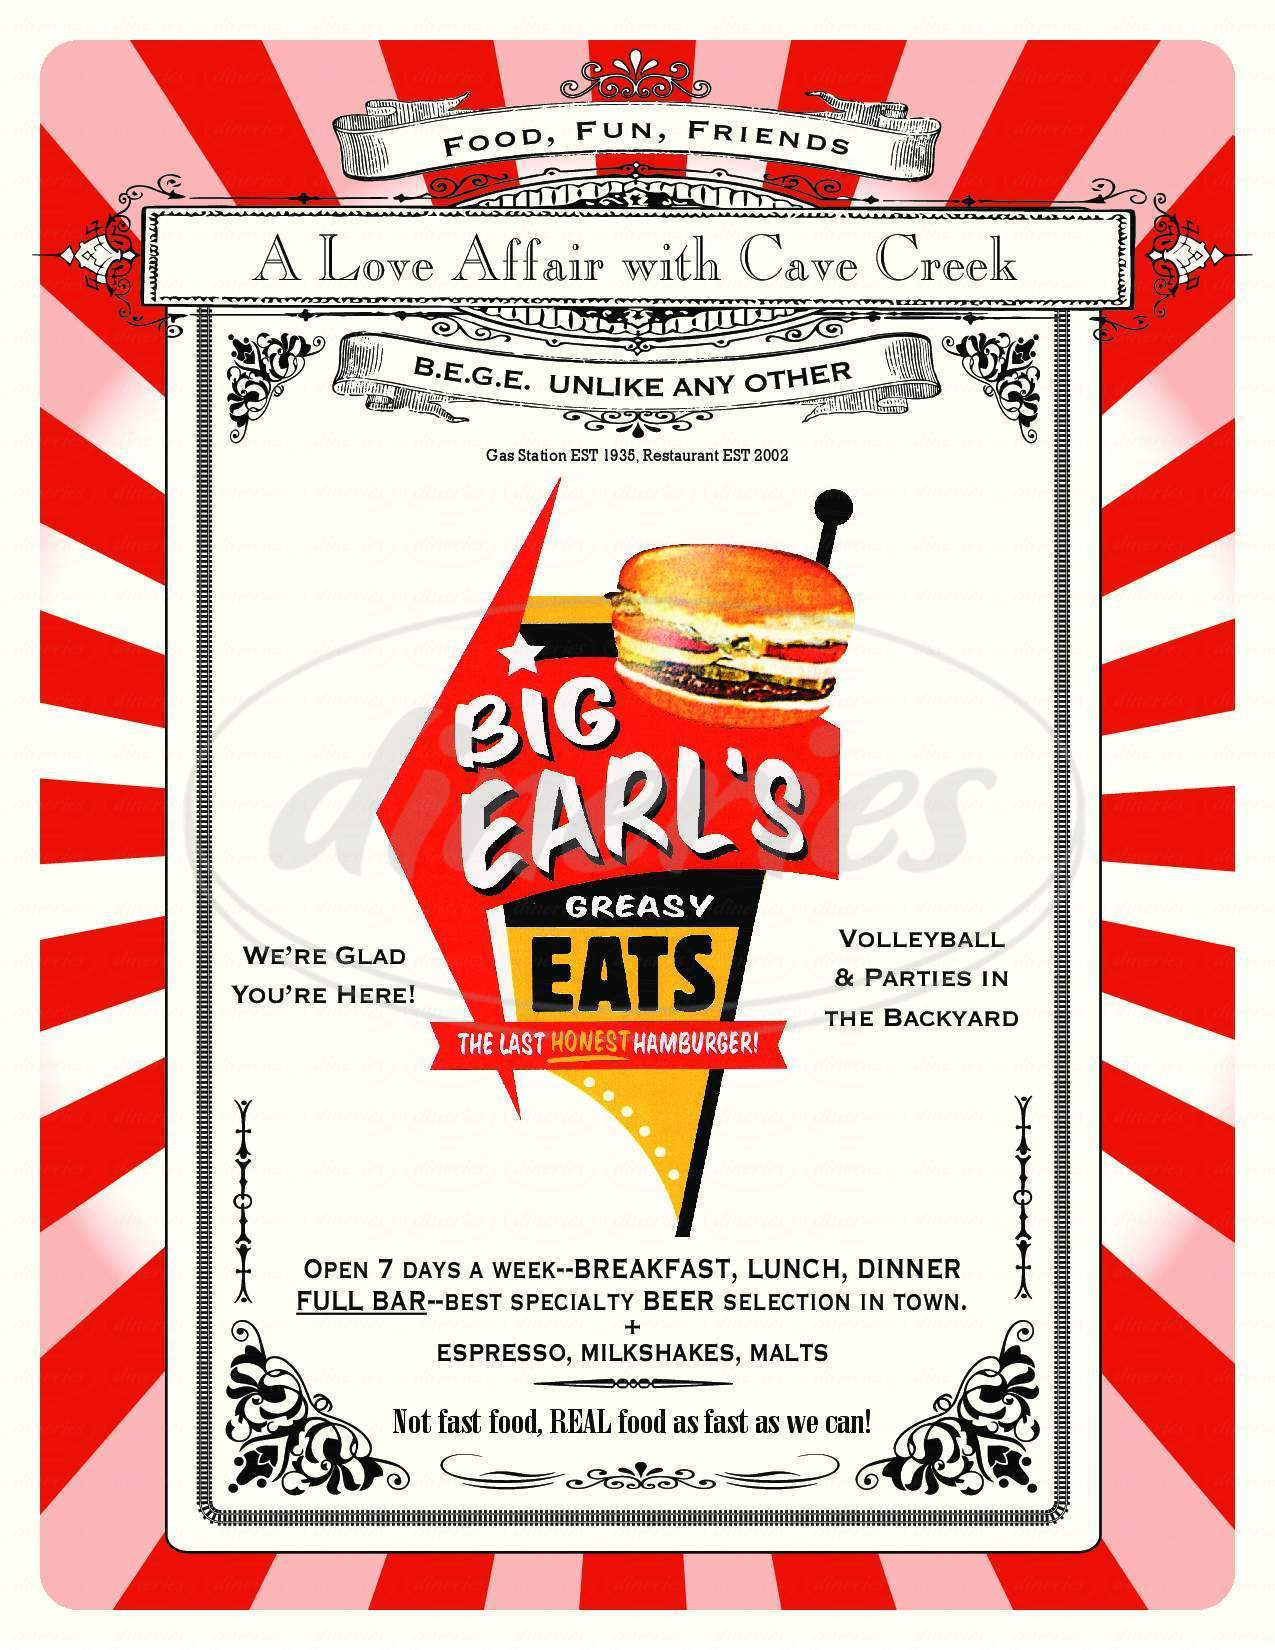 menu for Big Earl's Greasy Eats